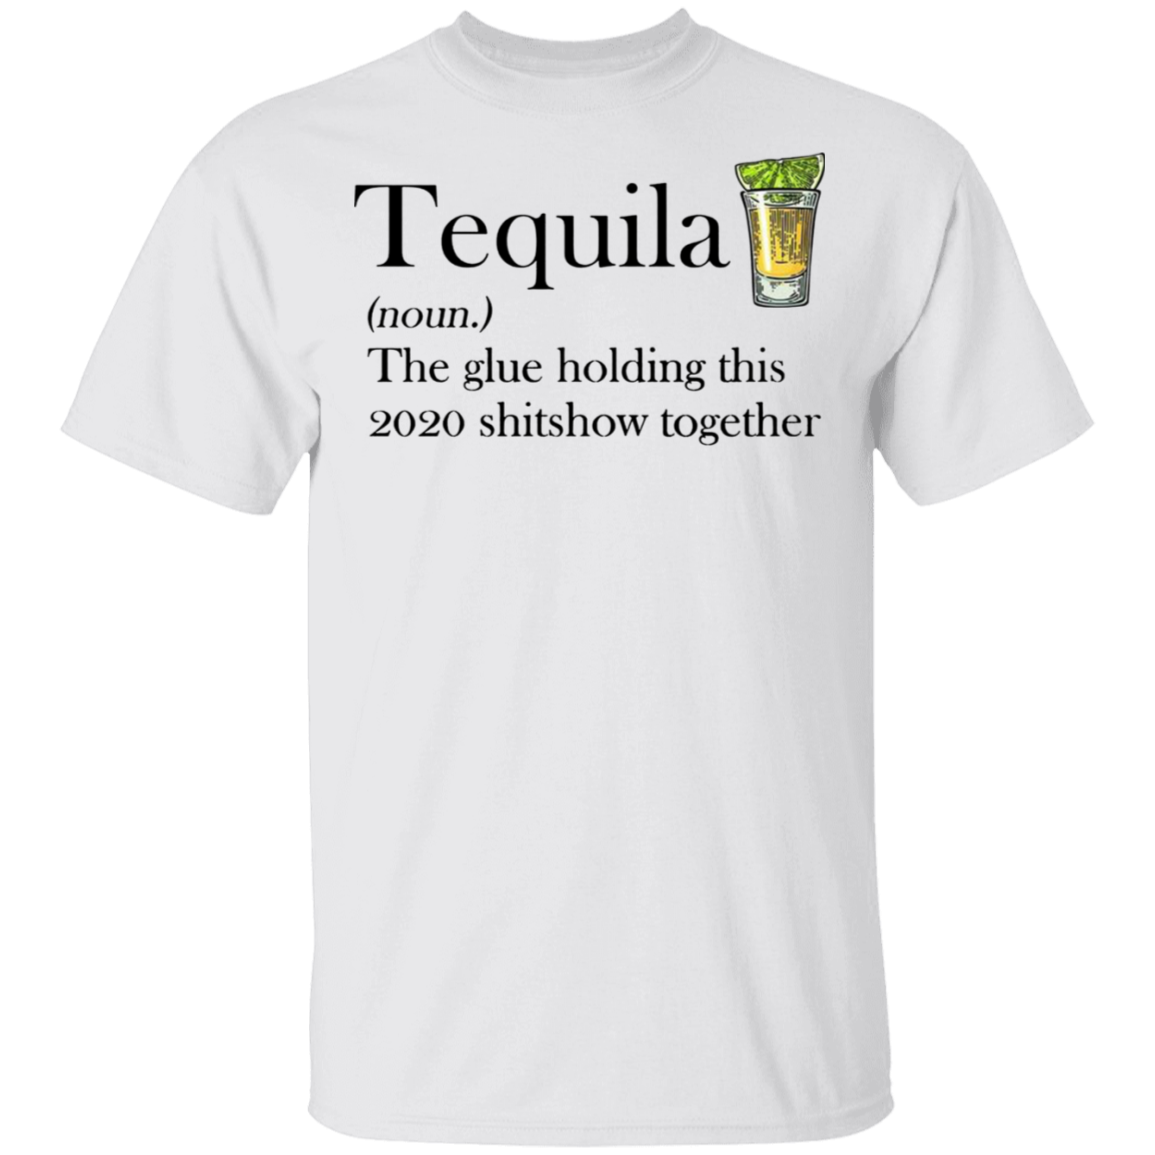 Tequila The Glue Holding This 2020 Shitshow Together T-Shirt Cool Gift For Men Tequila Lovers